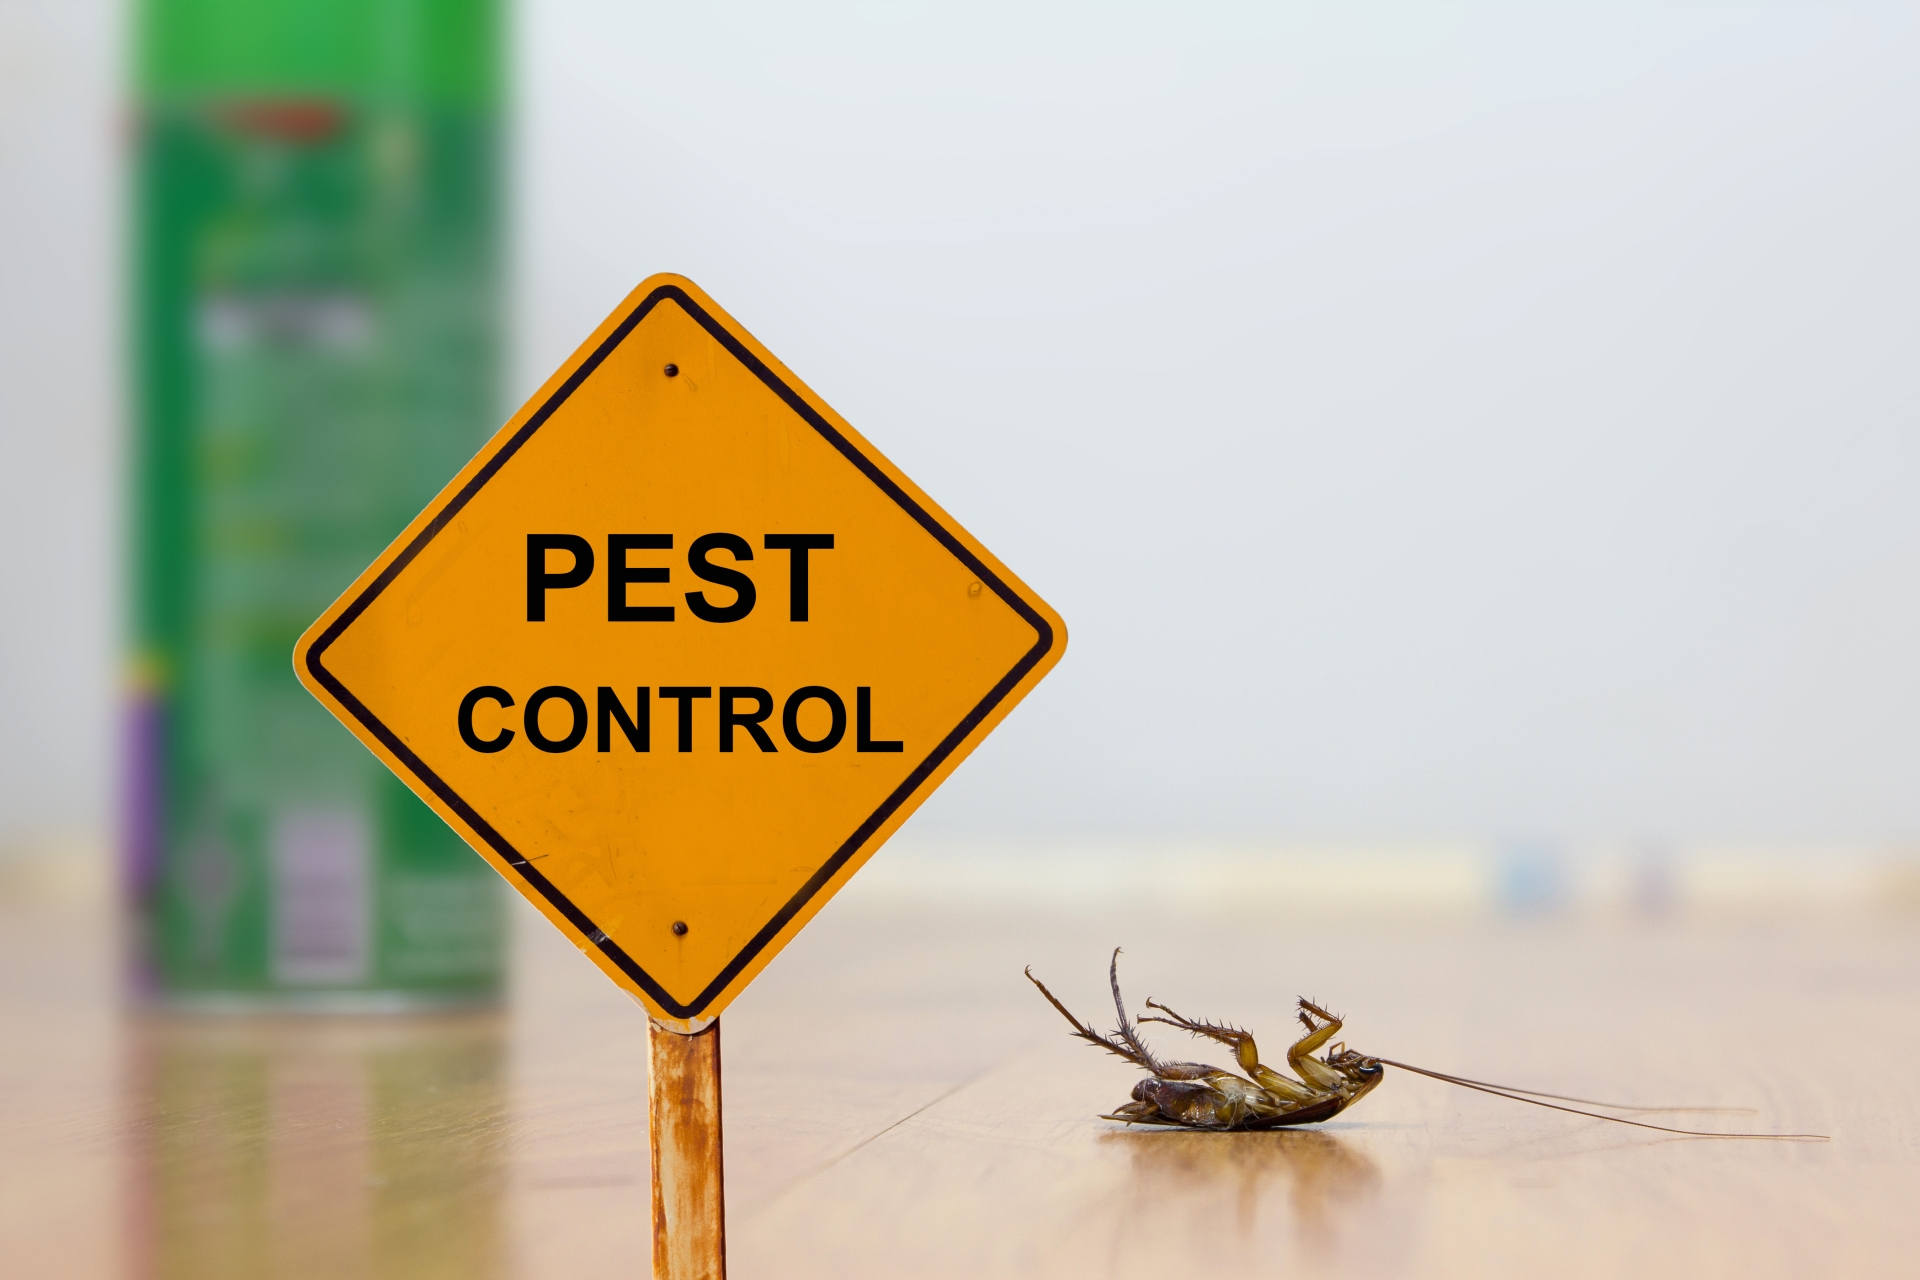 24 Hour Pest Control, Pest Control in Ponders End, Enfield Wash, EN3. Call Now 020 8166 9746